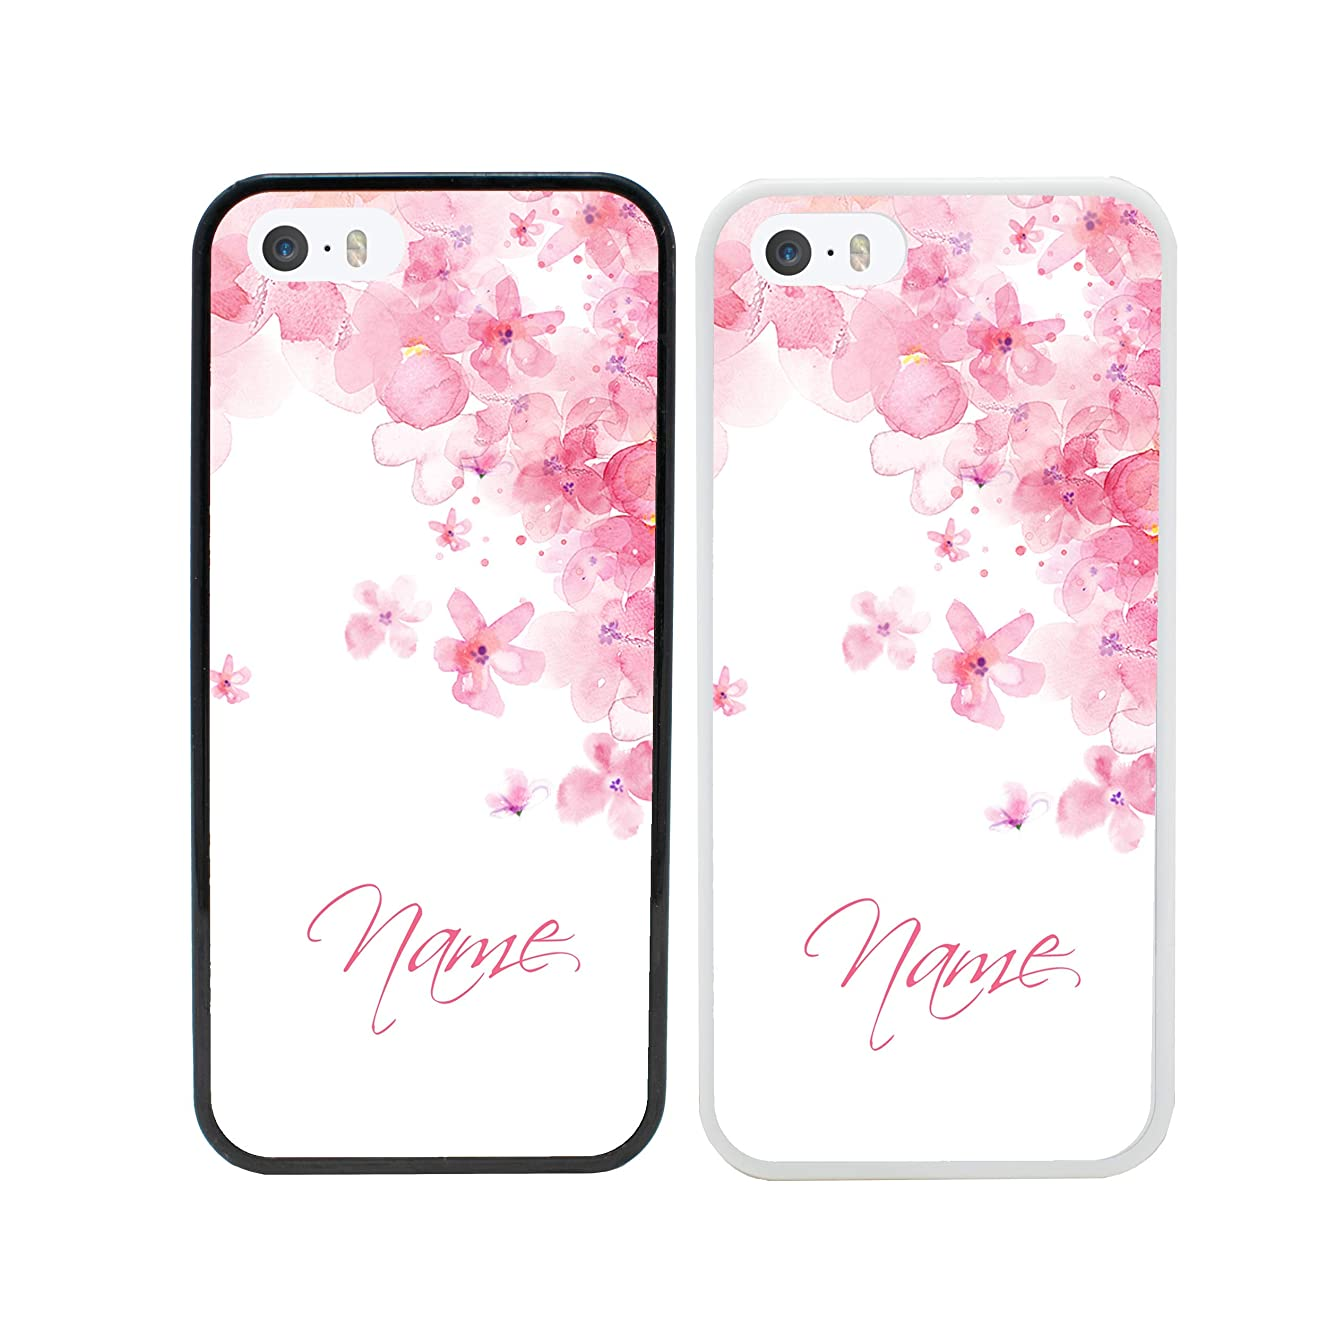 Personalised Phone Case for Apple iPhone 6 6s Smartphone Custom Cover Personal Your Name Bumper 4.7